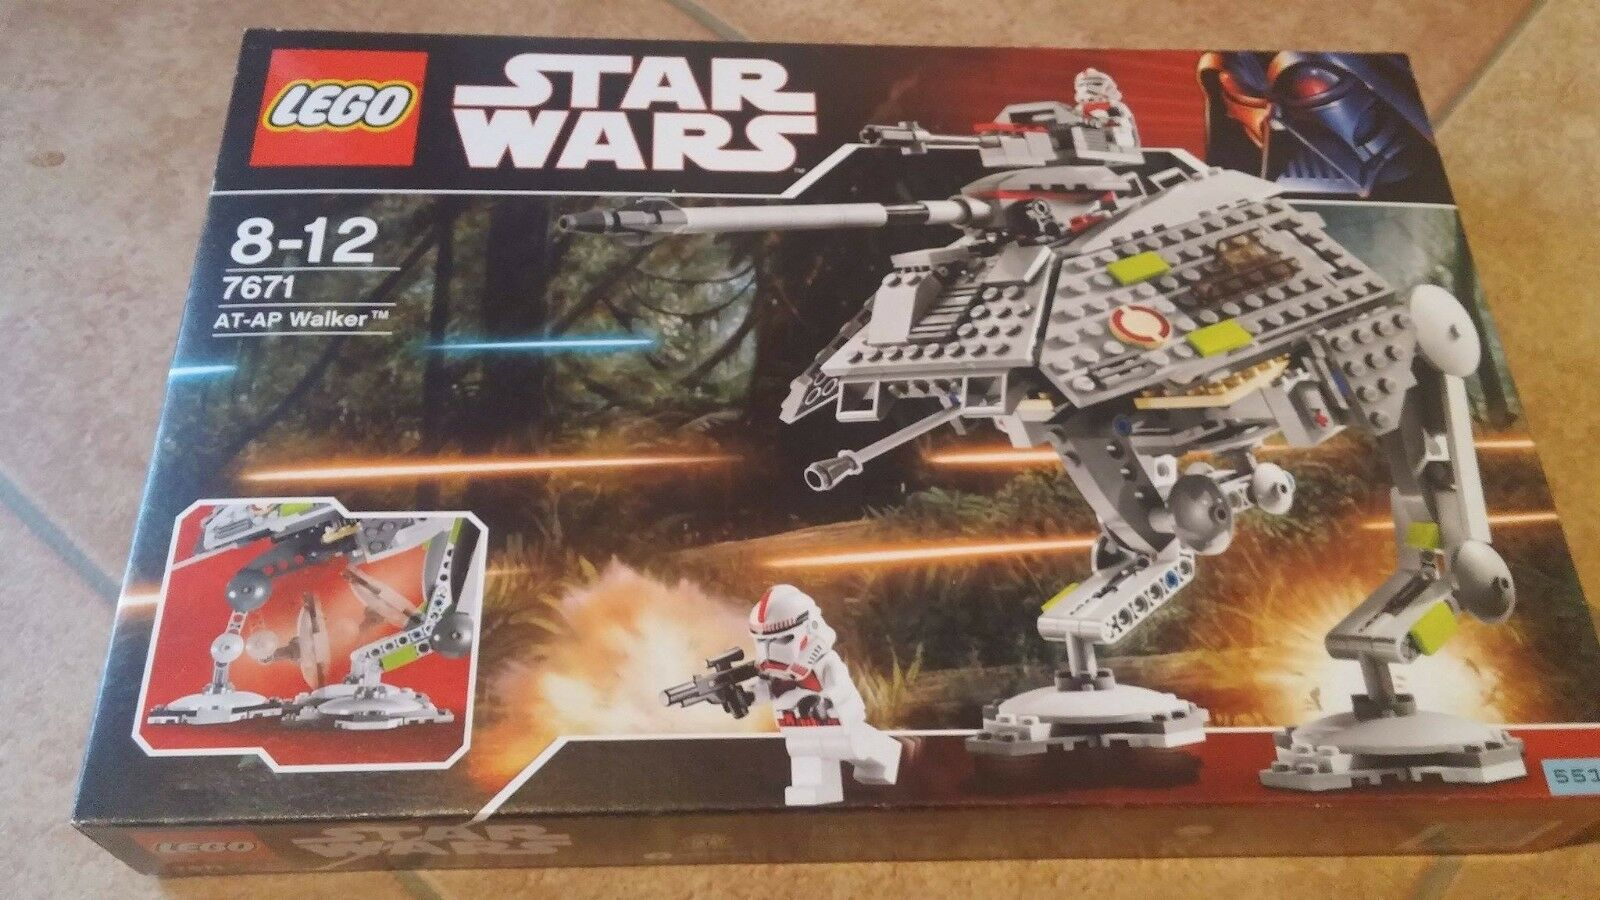 LEGO Star Wars AT-AP Walker  7671  Neu und OVP